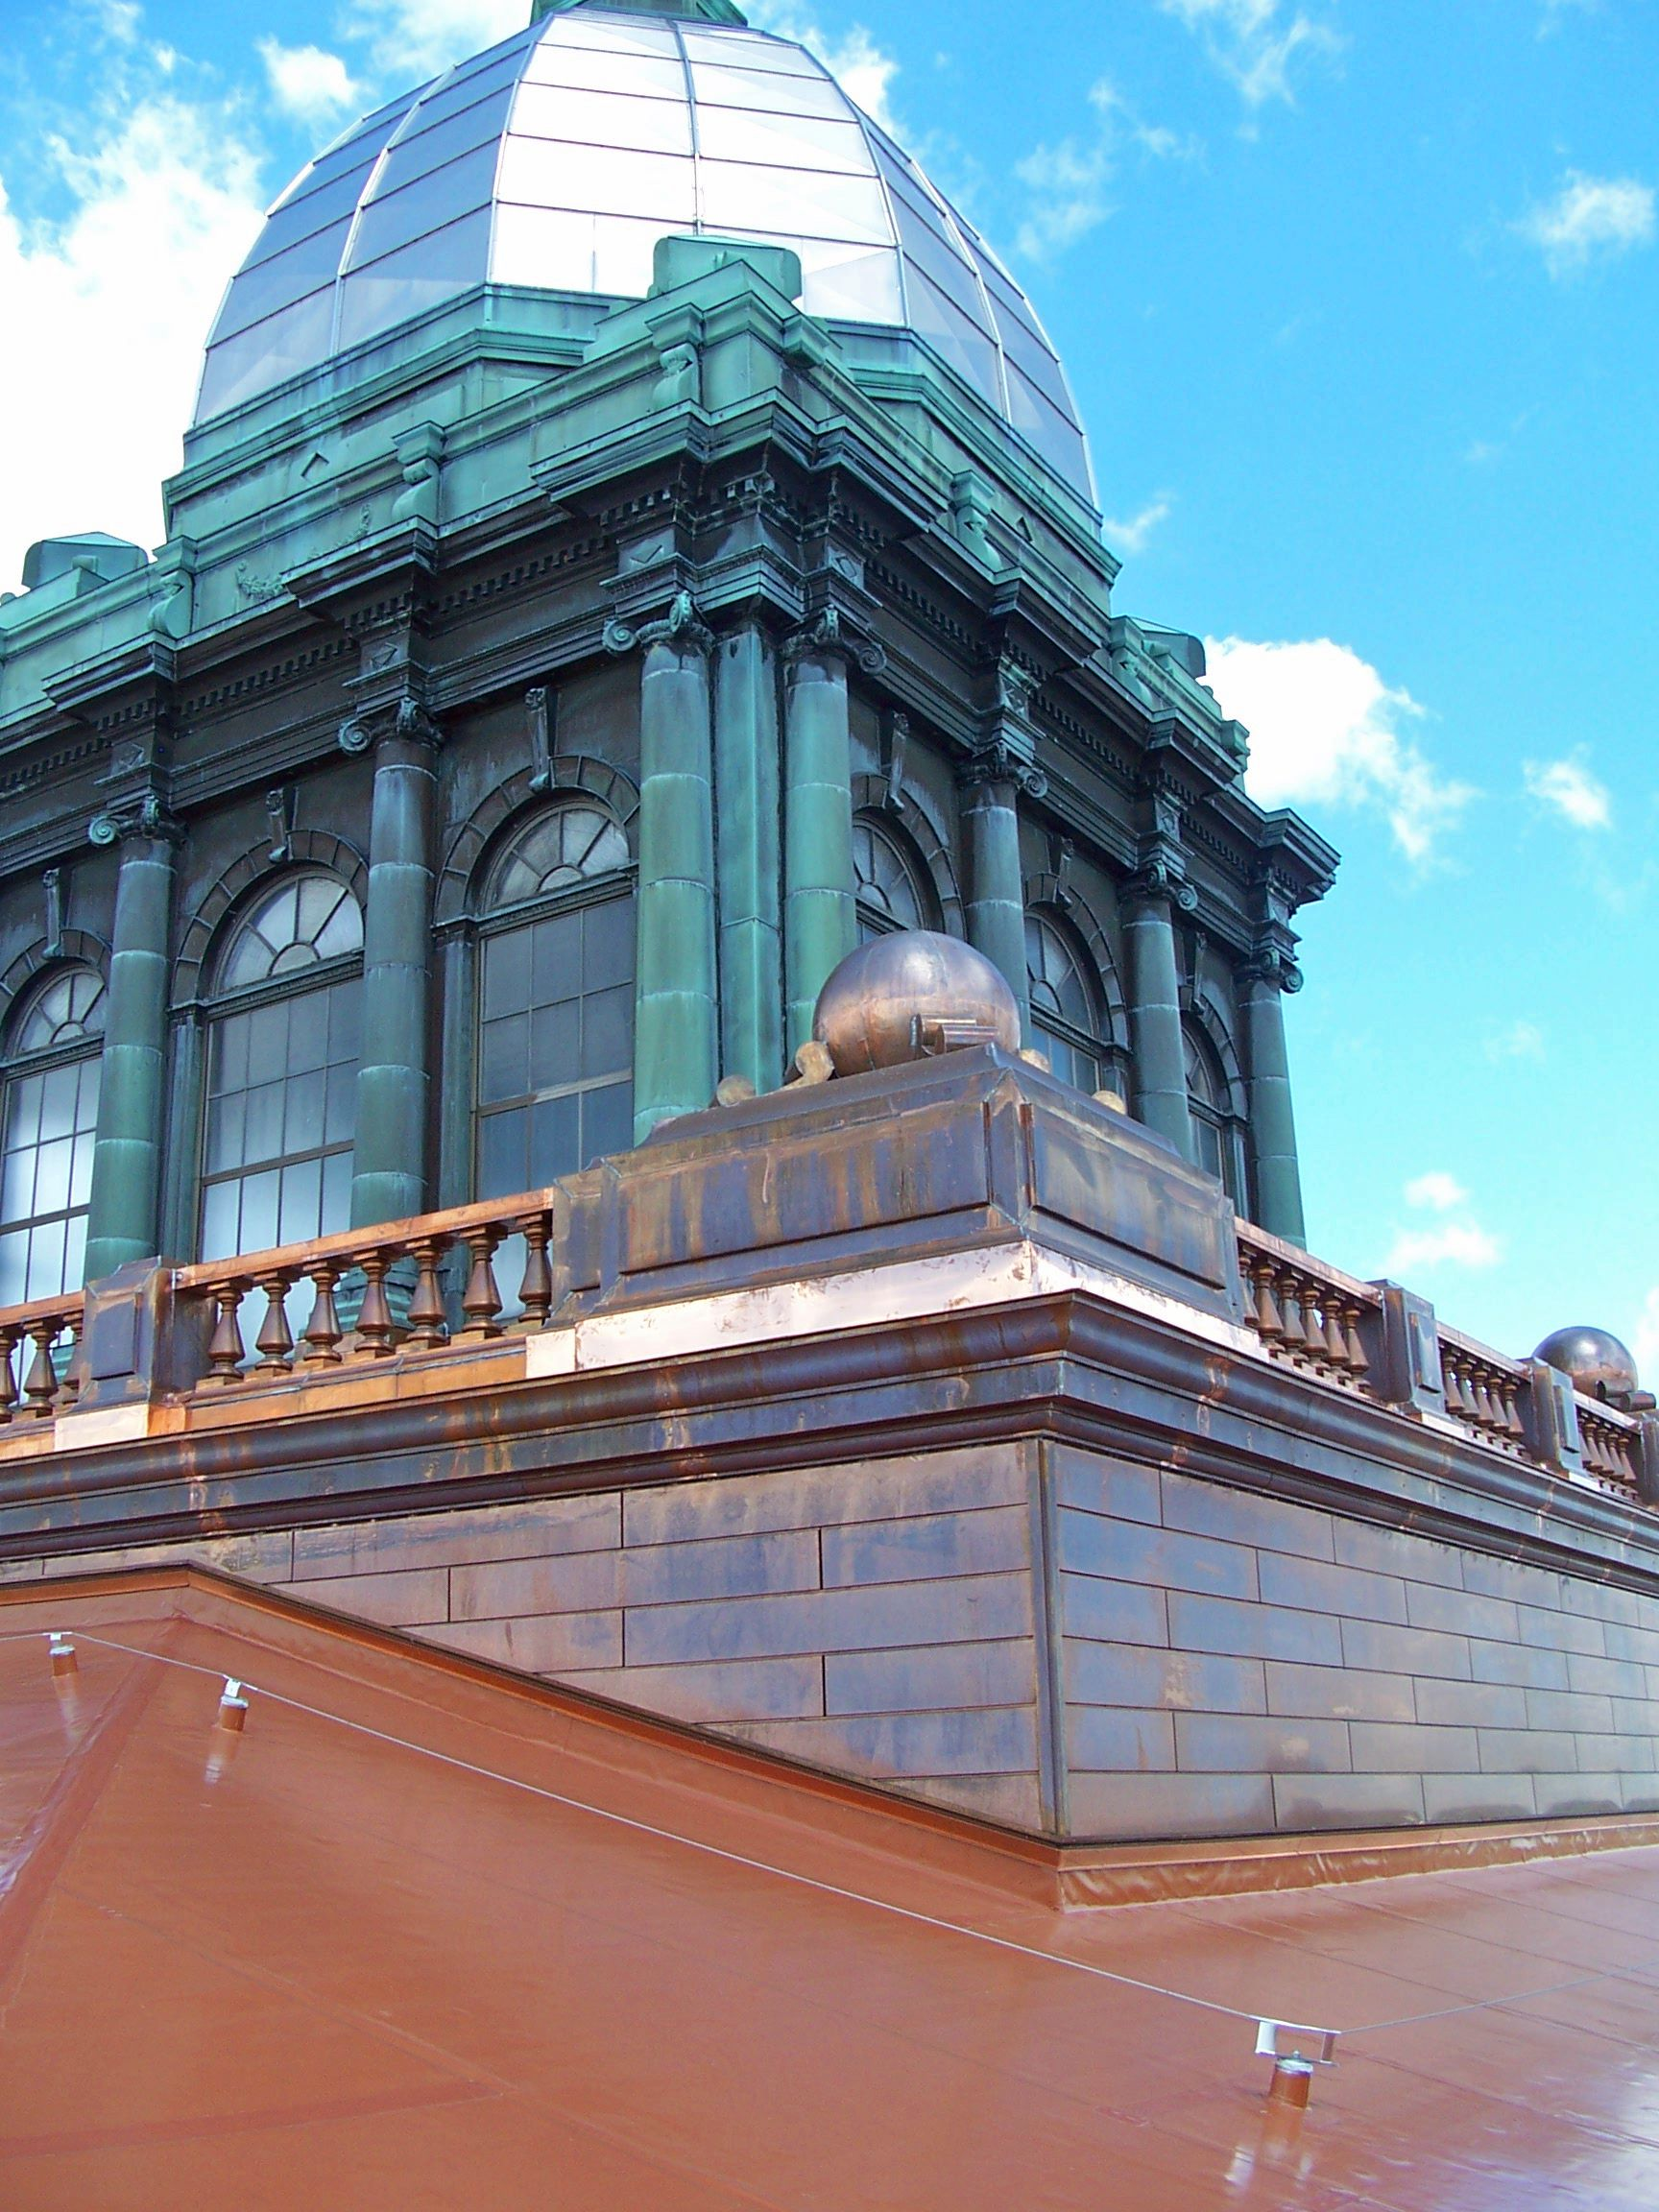 Renaissance Roofing Inc Roofing Systems Copper Roof Roofing